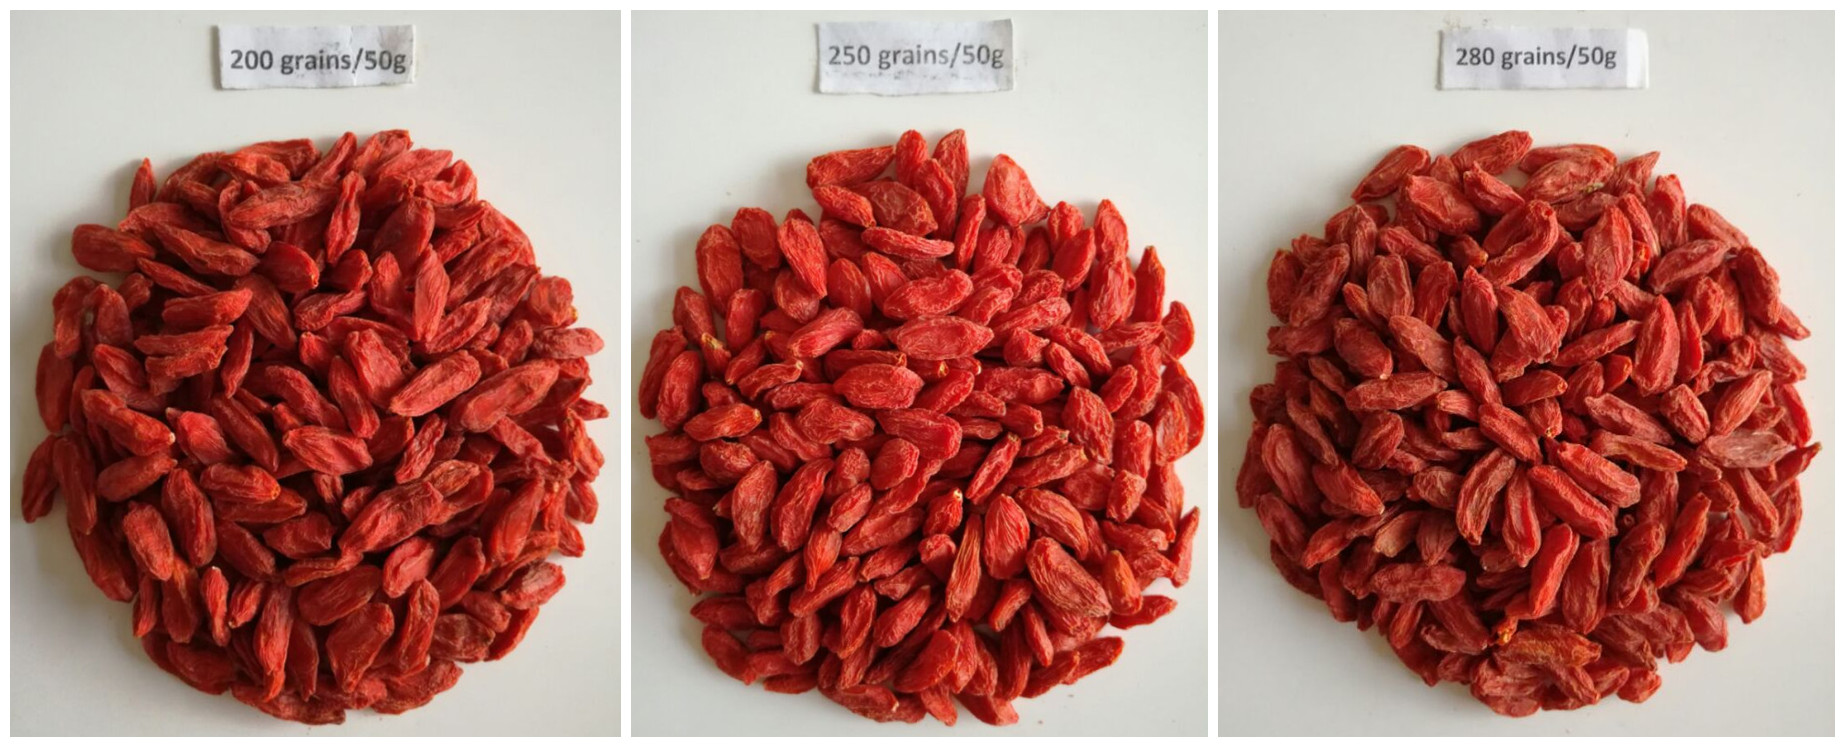 within 300 Grains Goji berries wolfberry